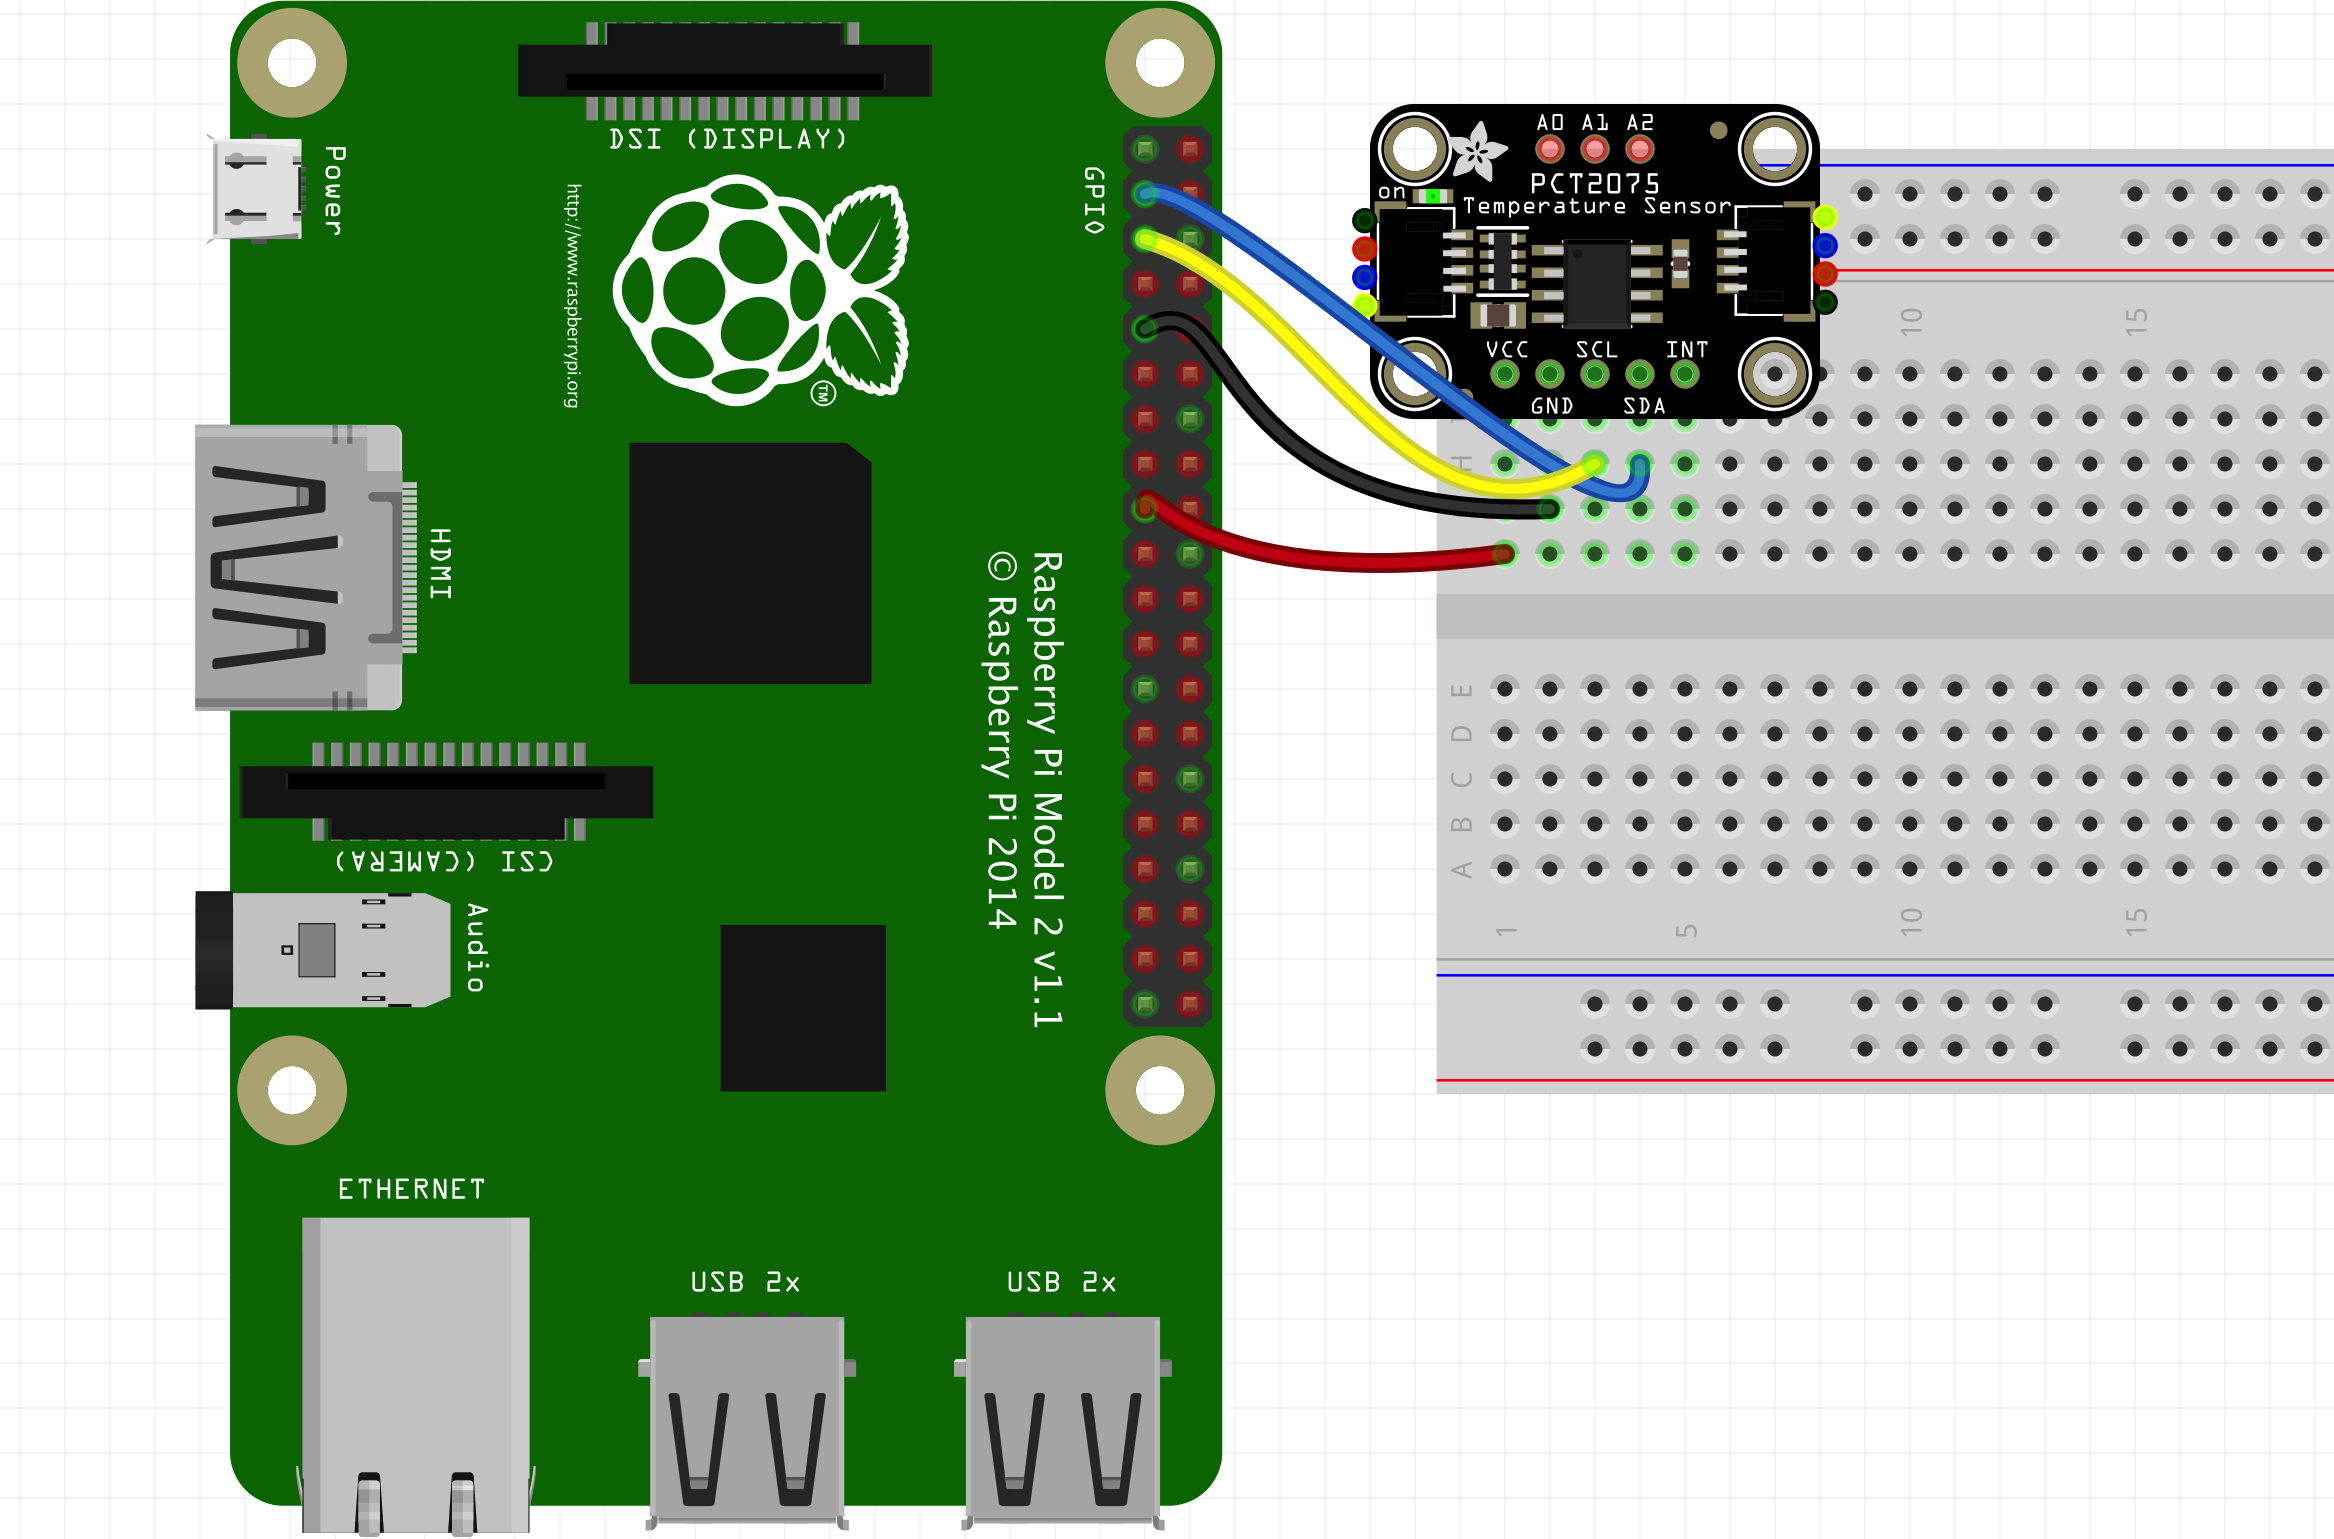 adafruit_products_rpi_breadboard_wiring.png